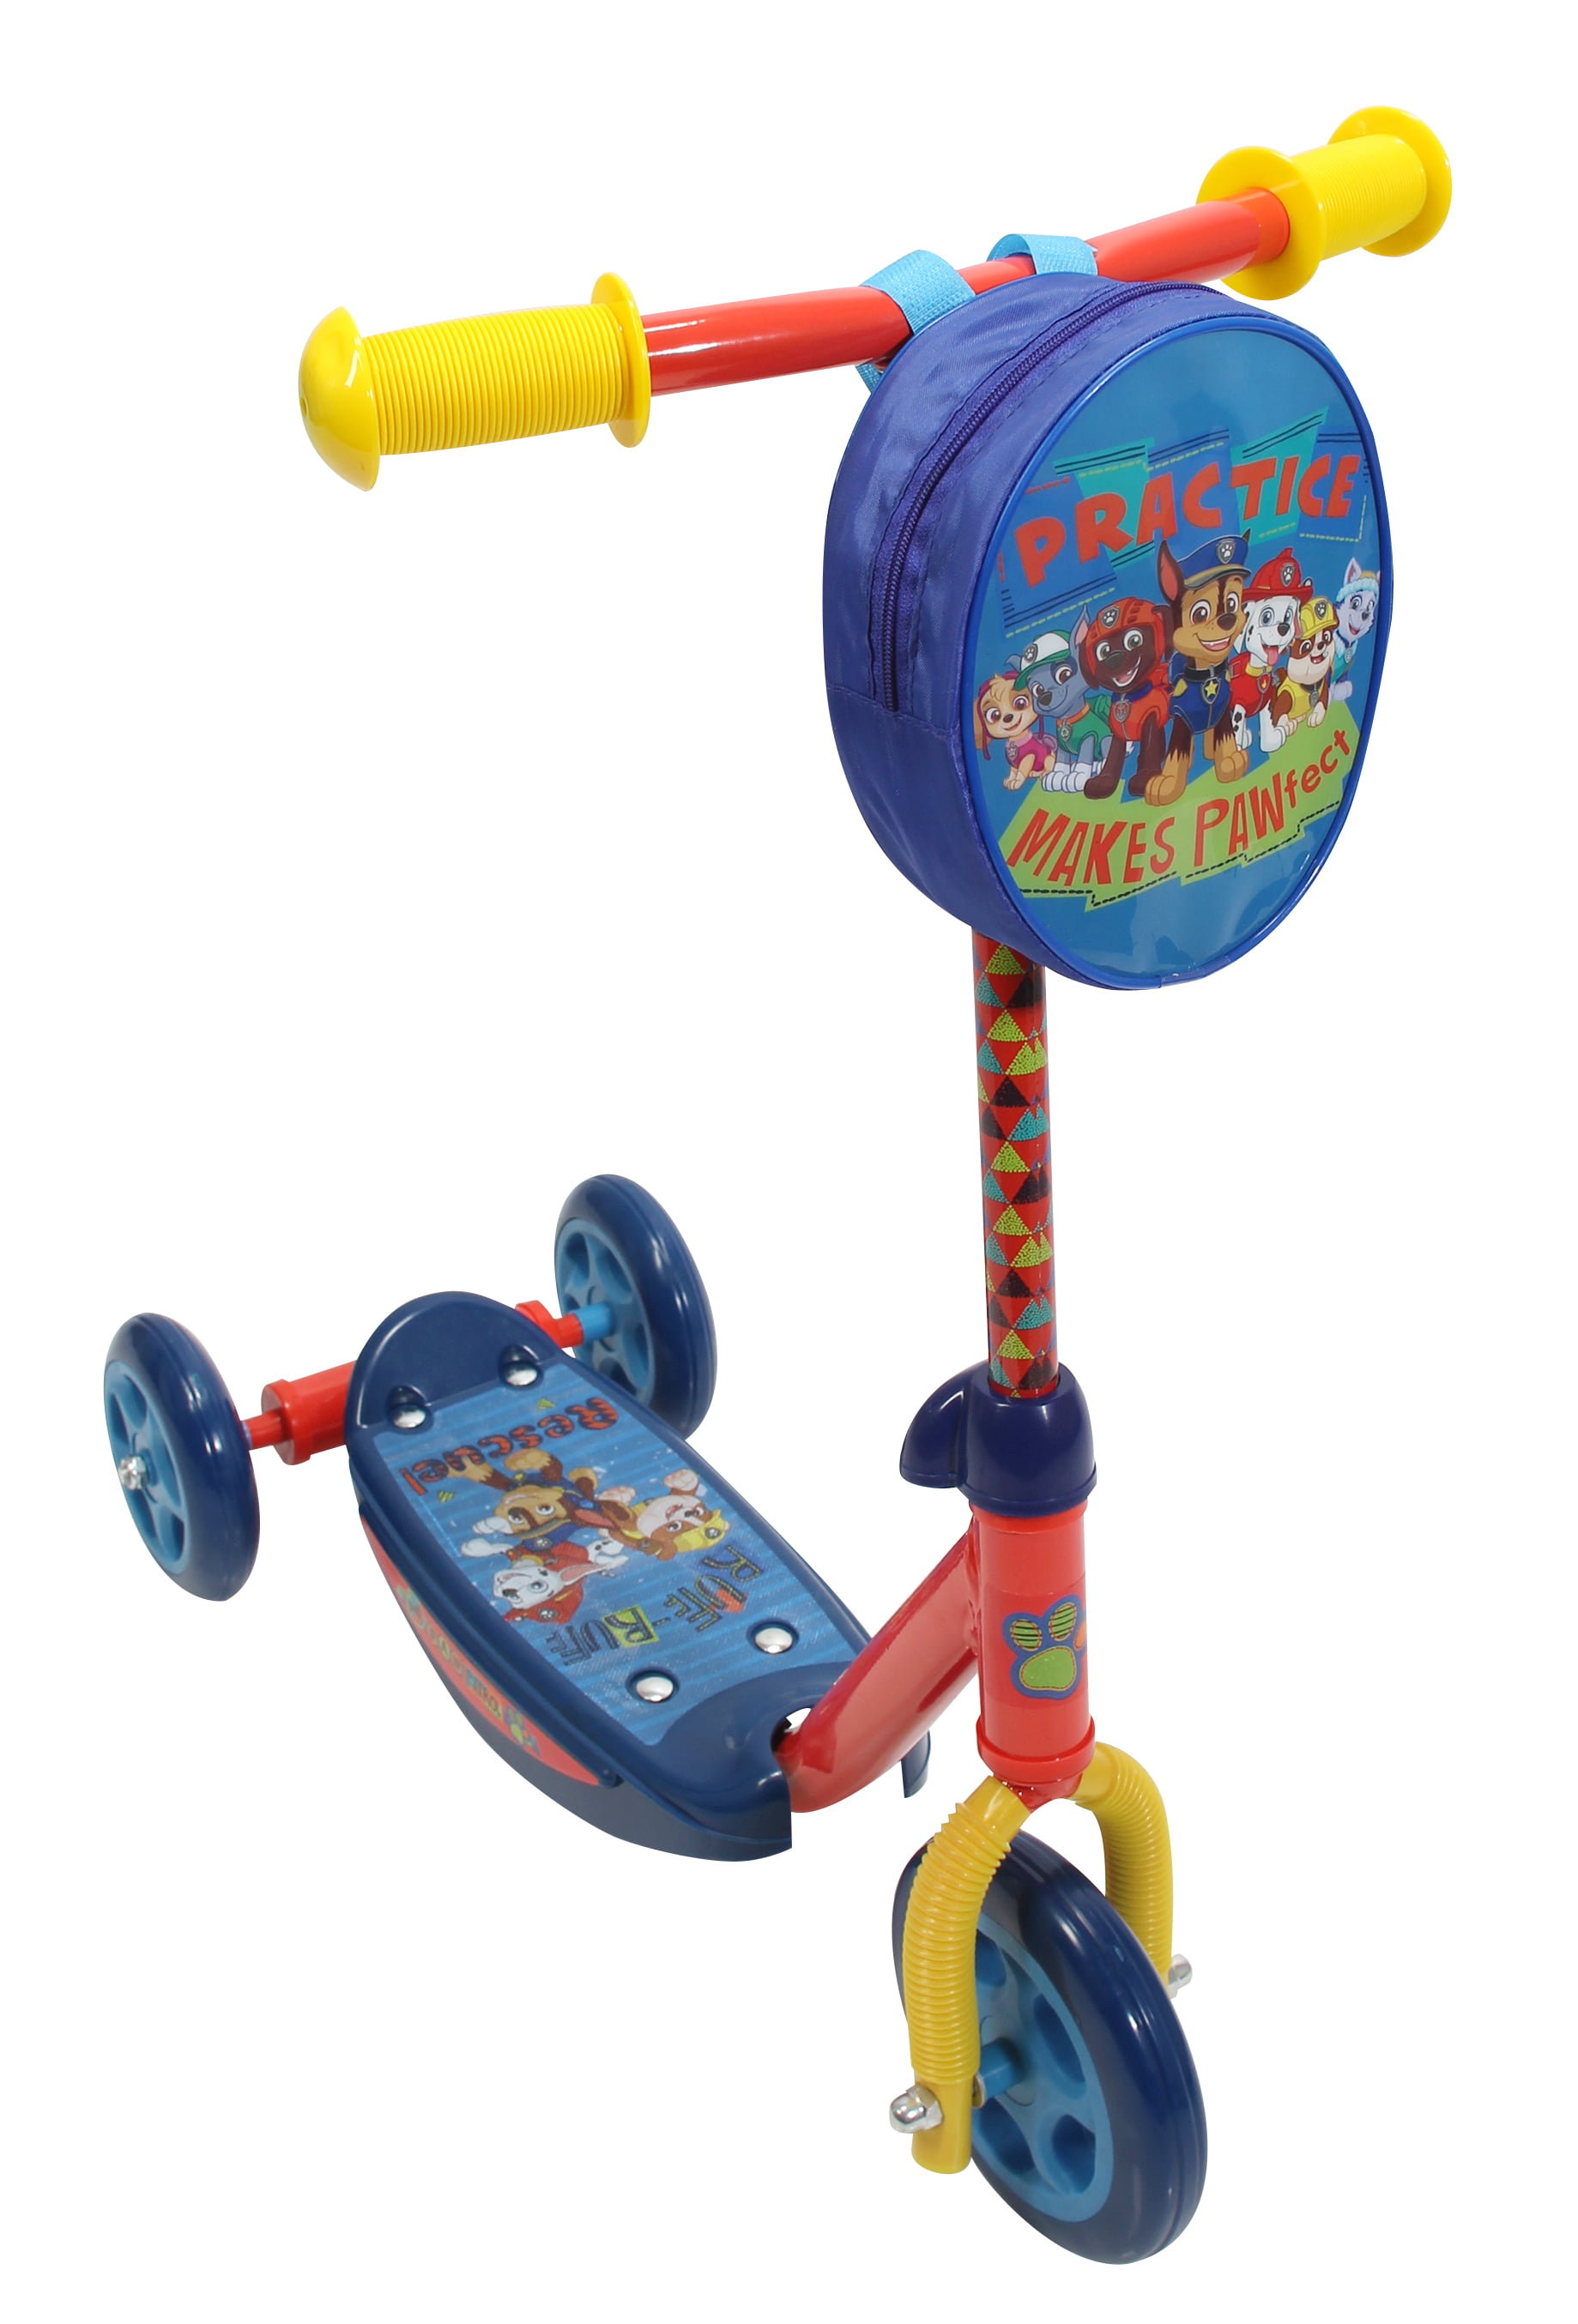 Playwheel Paw Patrol 3-Wheel Kick Scooter by Bravo Sports